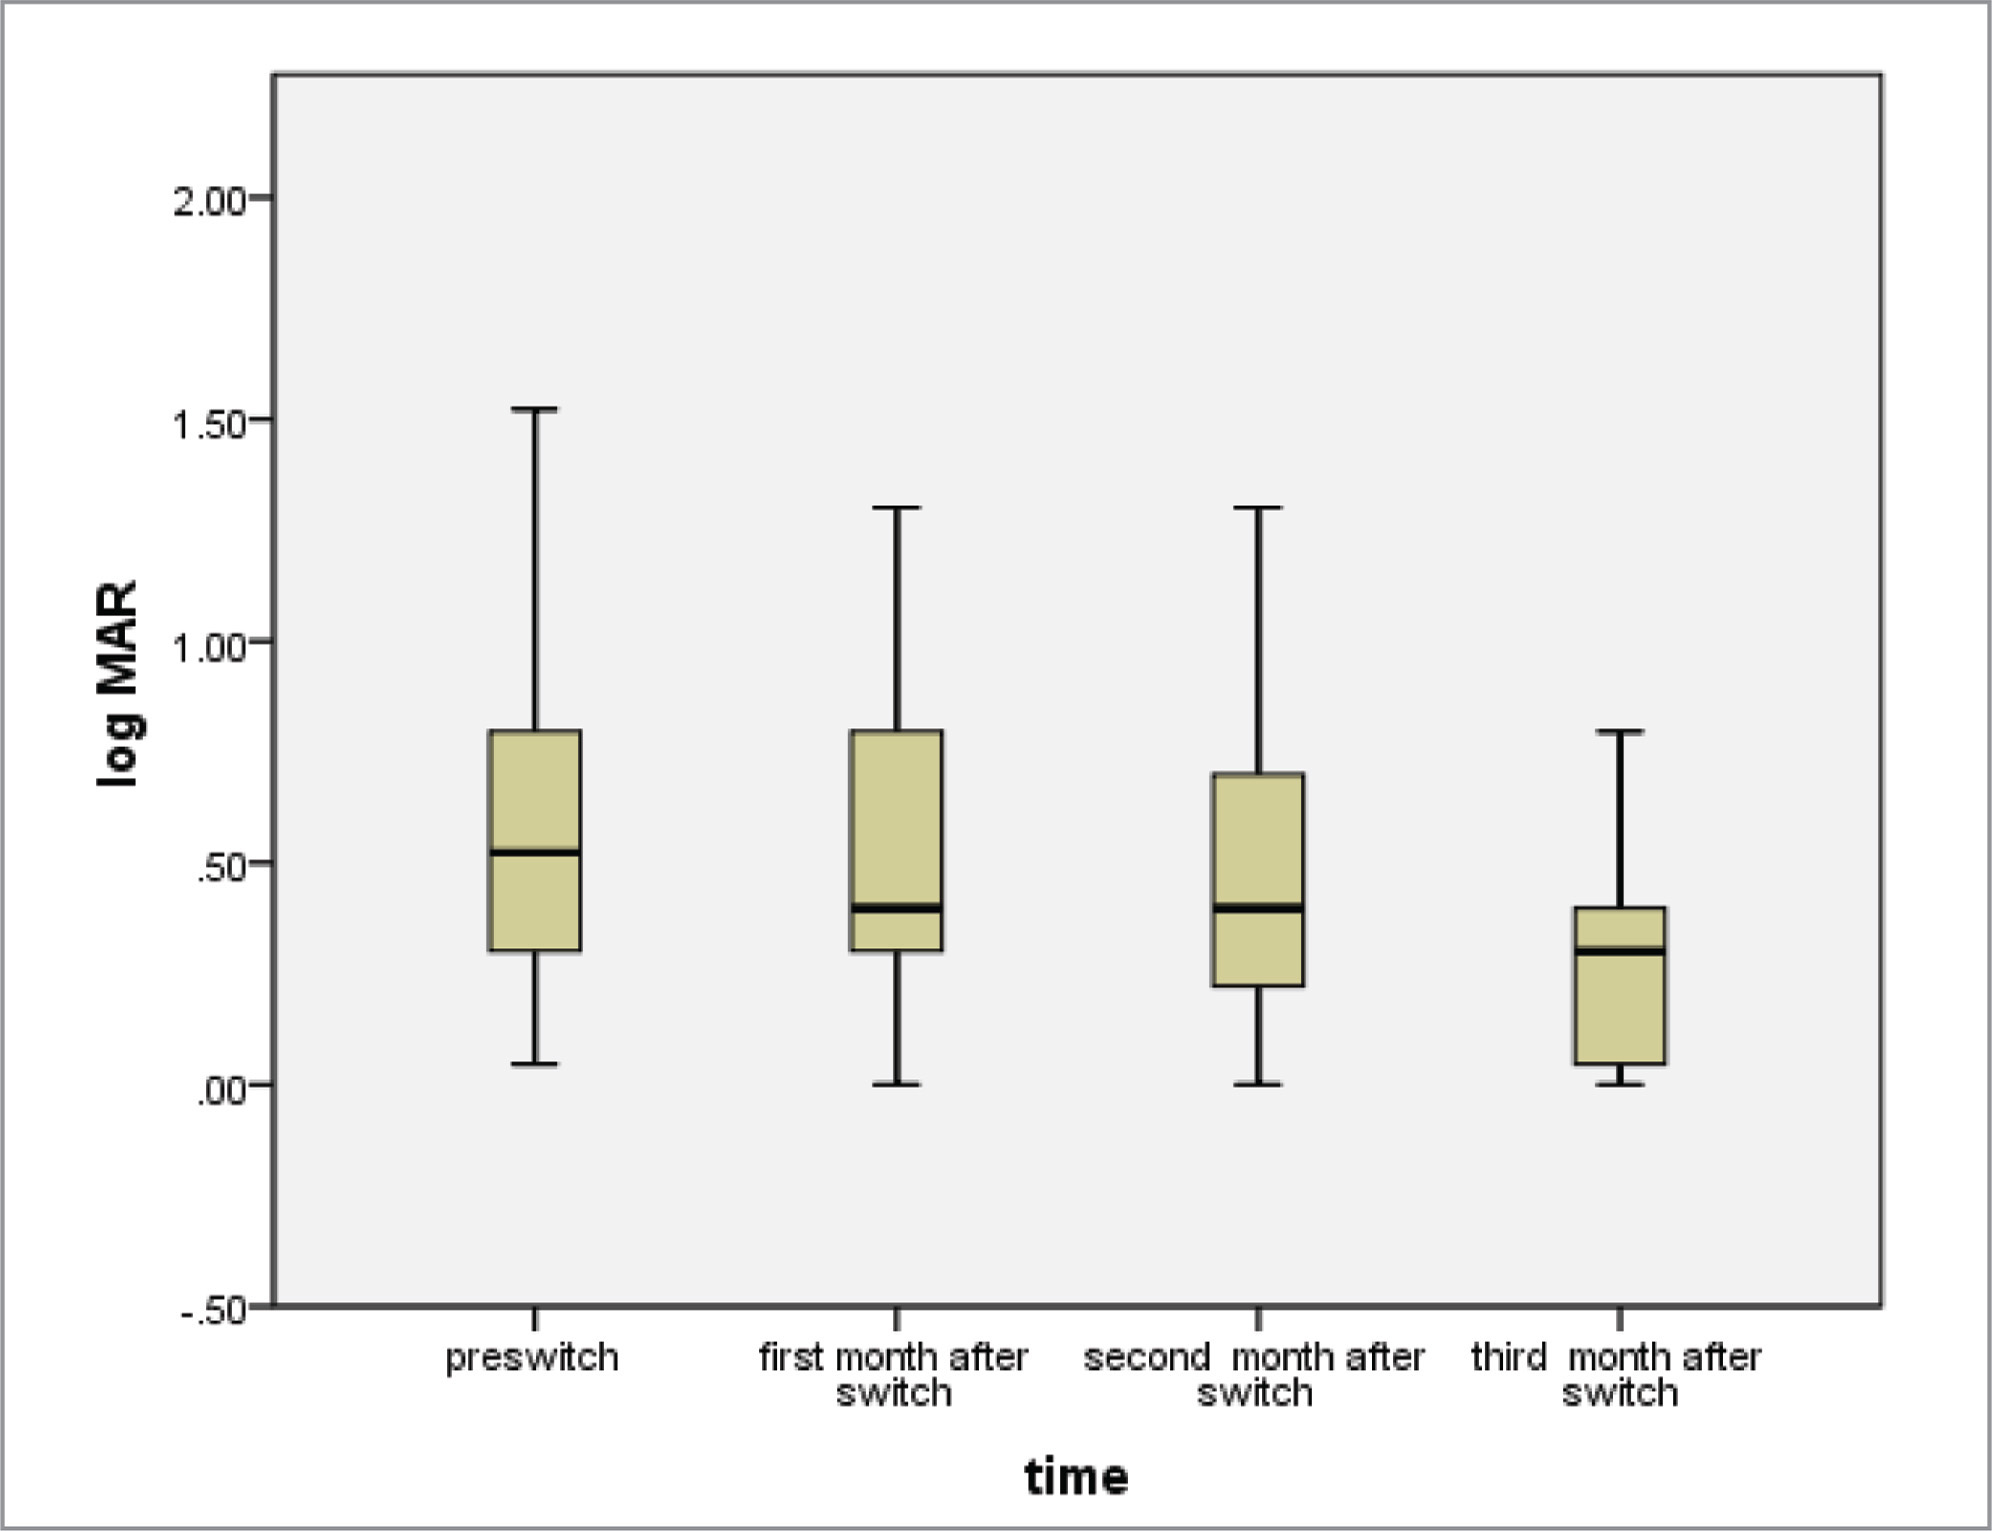 Change in best-corrected visual acuity after switching to ziv-aflibercept.